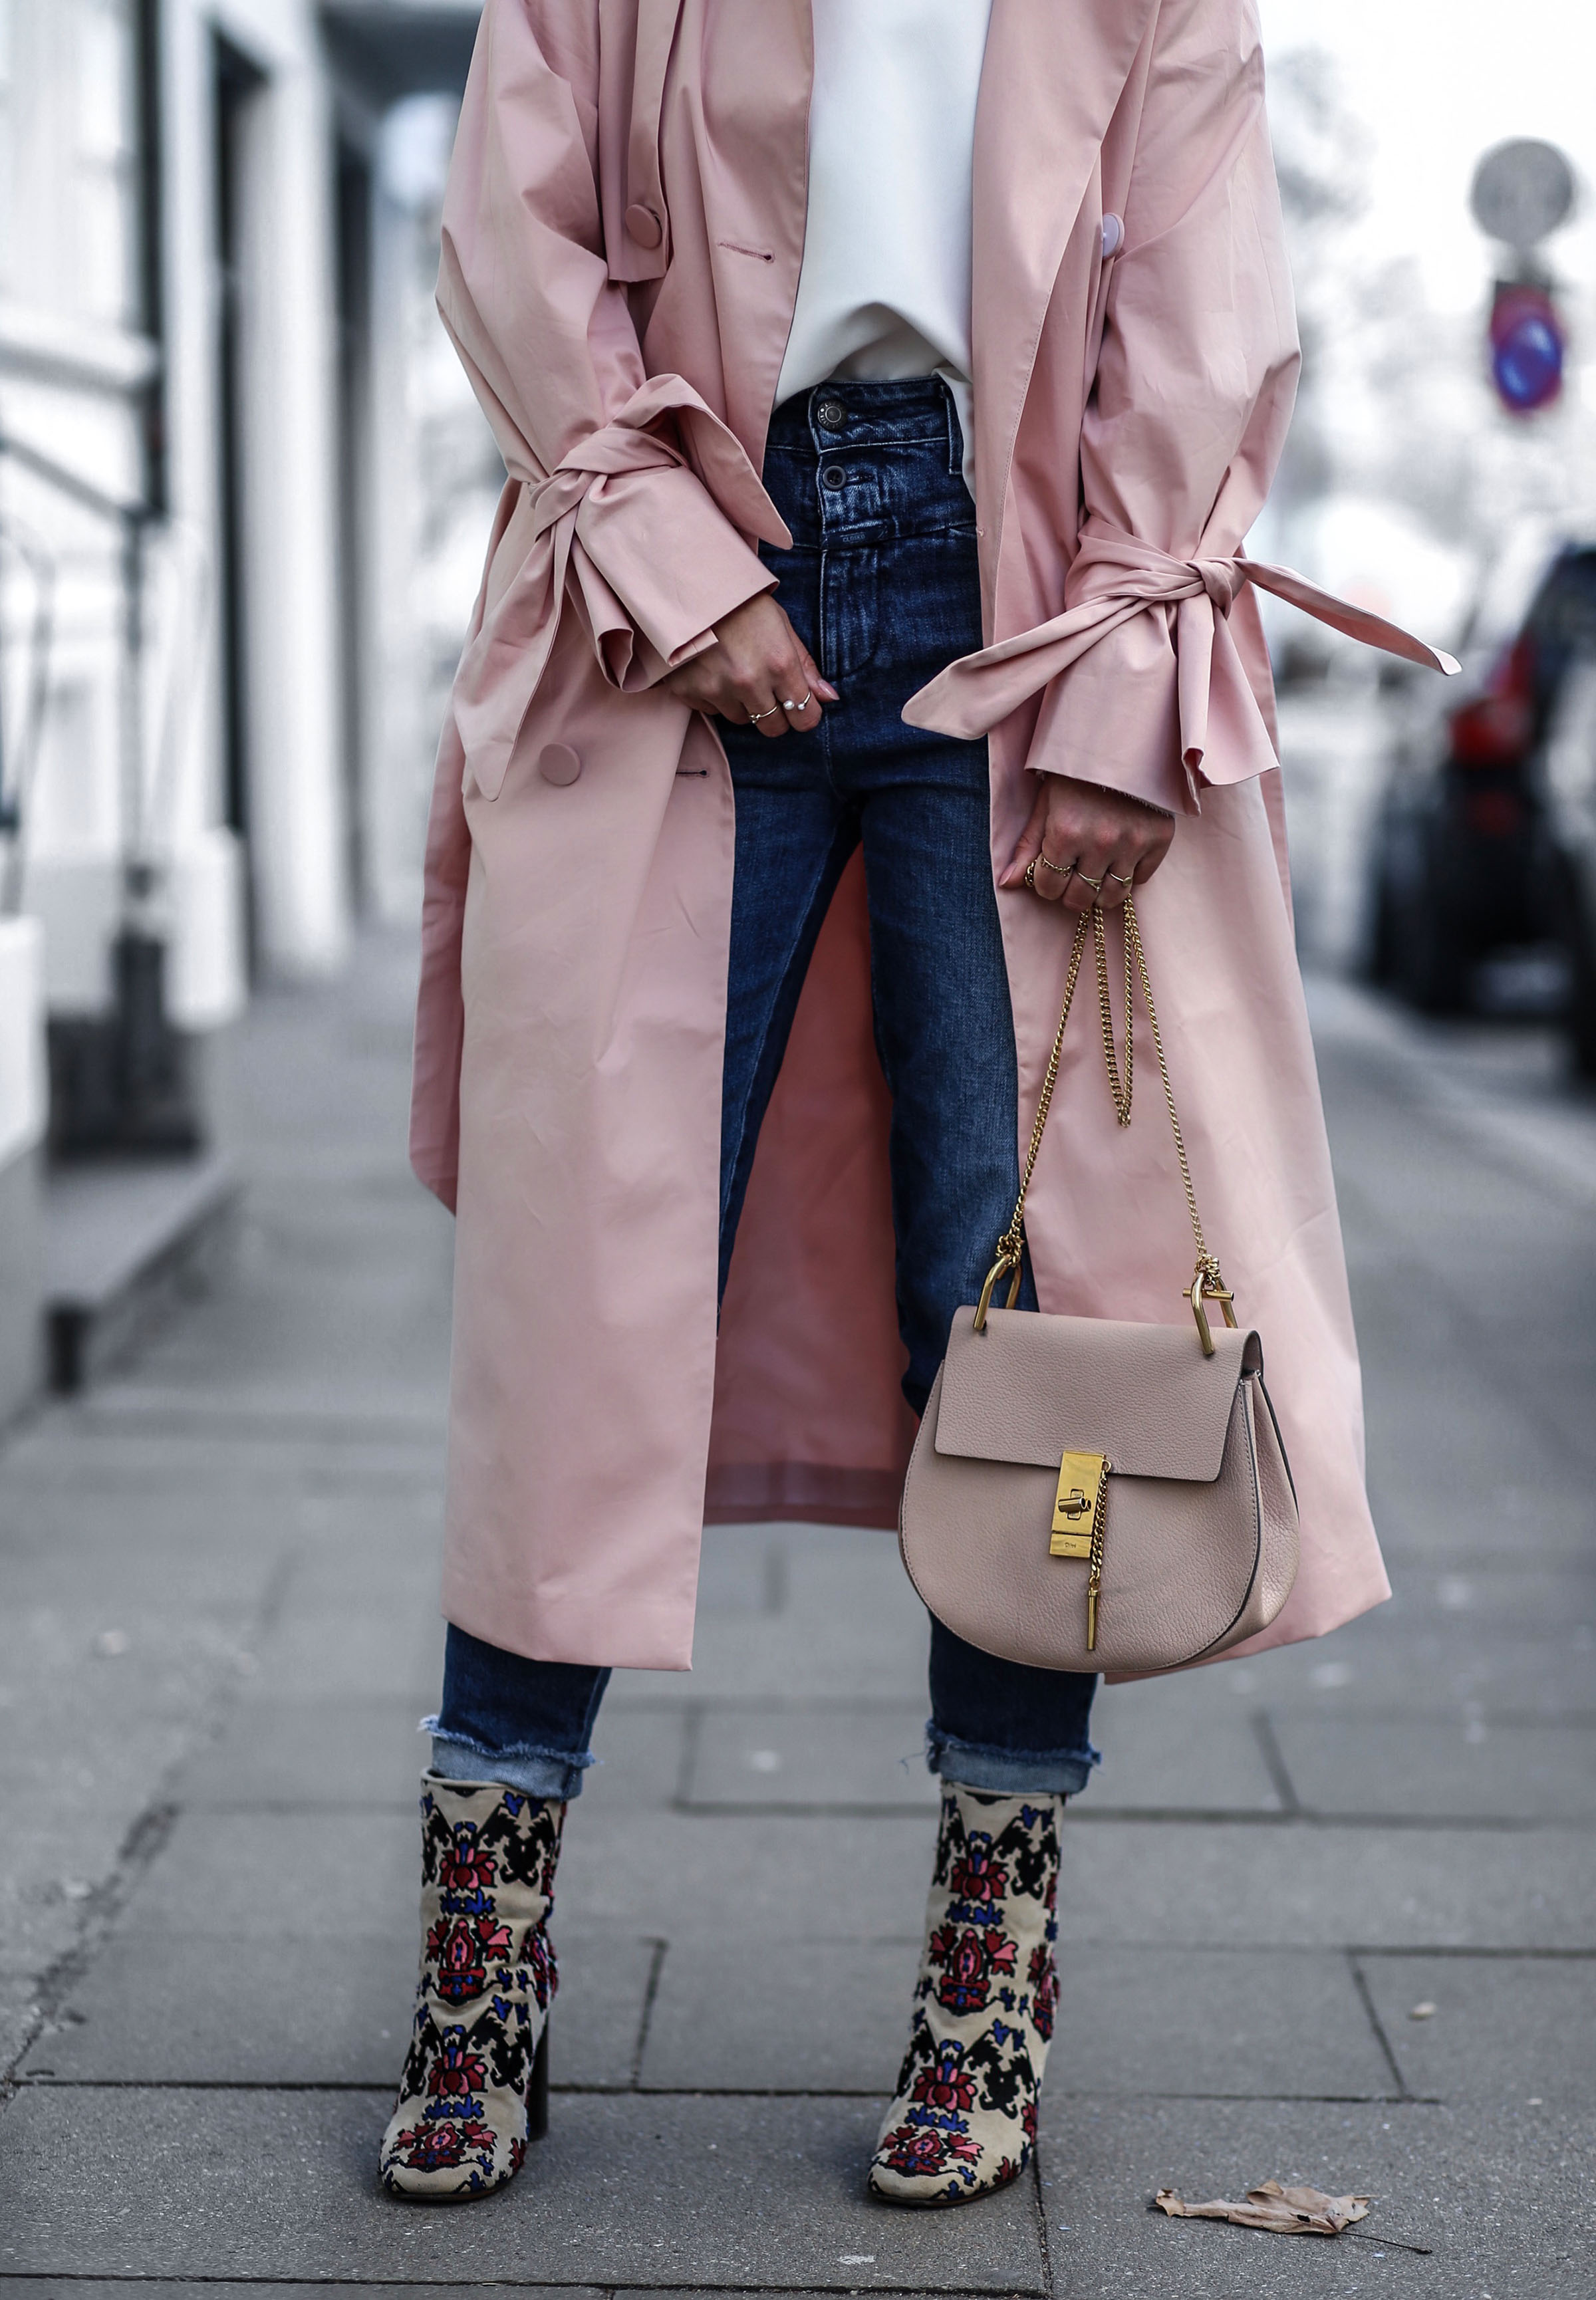 Isabel_Marant_boots_chloé_drew_cement_pink